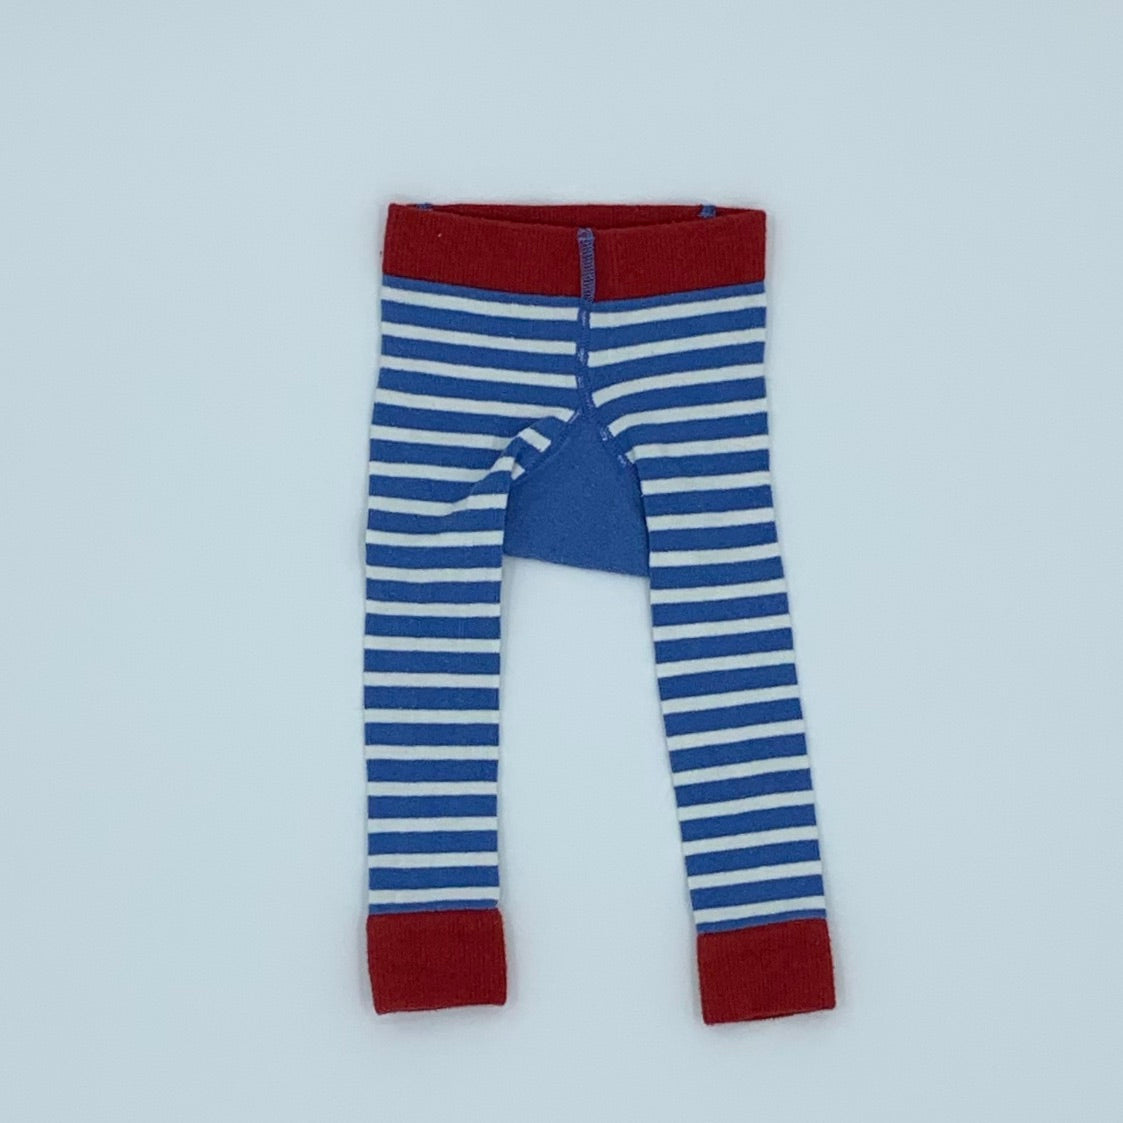 Gently Worn Jojo Maman Bebe blue & white knitted tights size 0-6 months